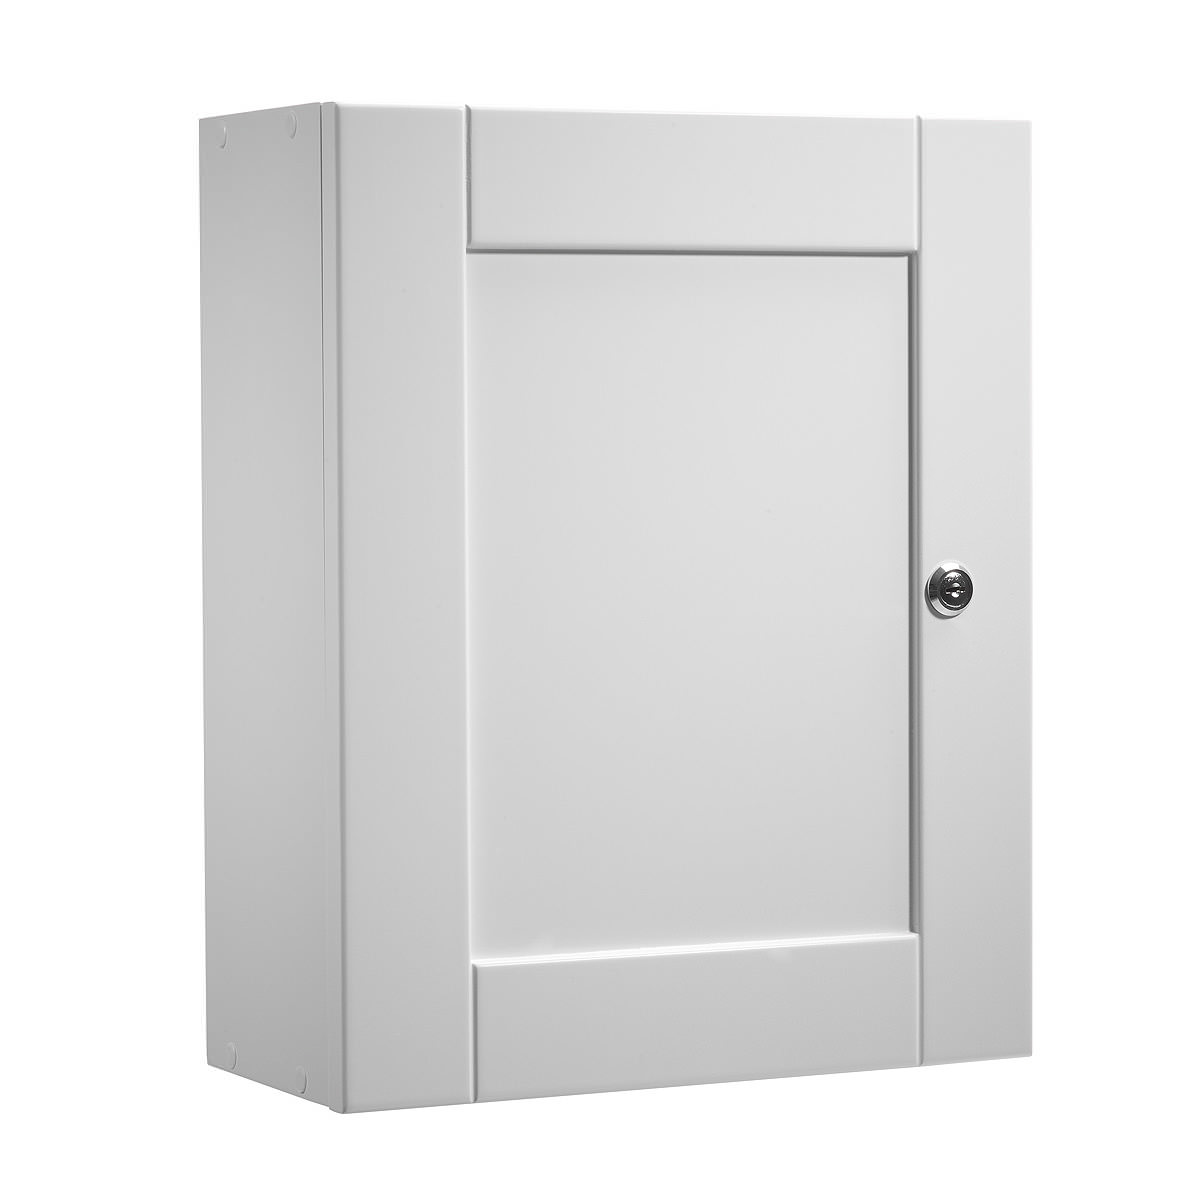 Roper rhodes medicab white 334mm lockable medicine cabinet for Medicine cabinets